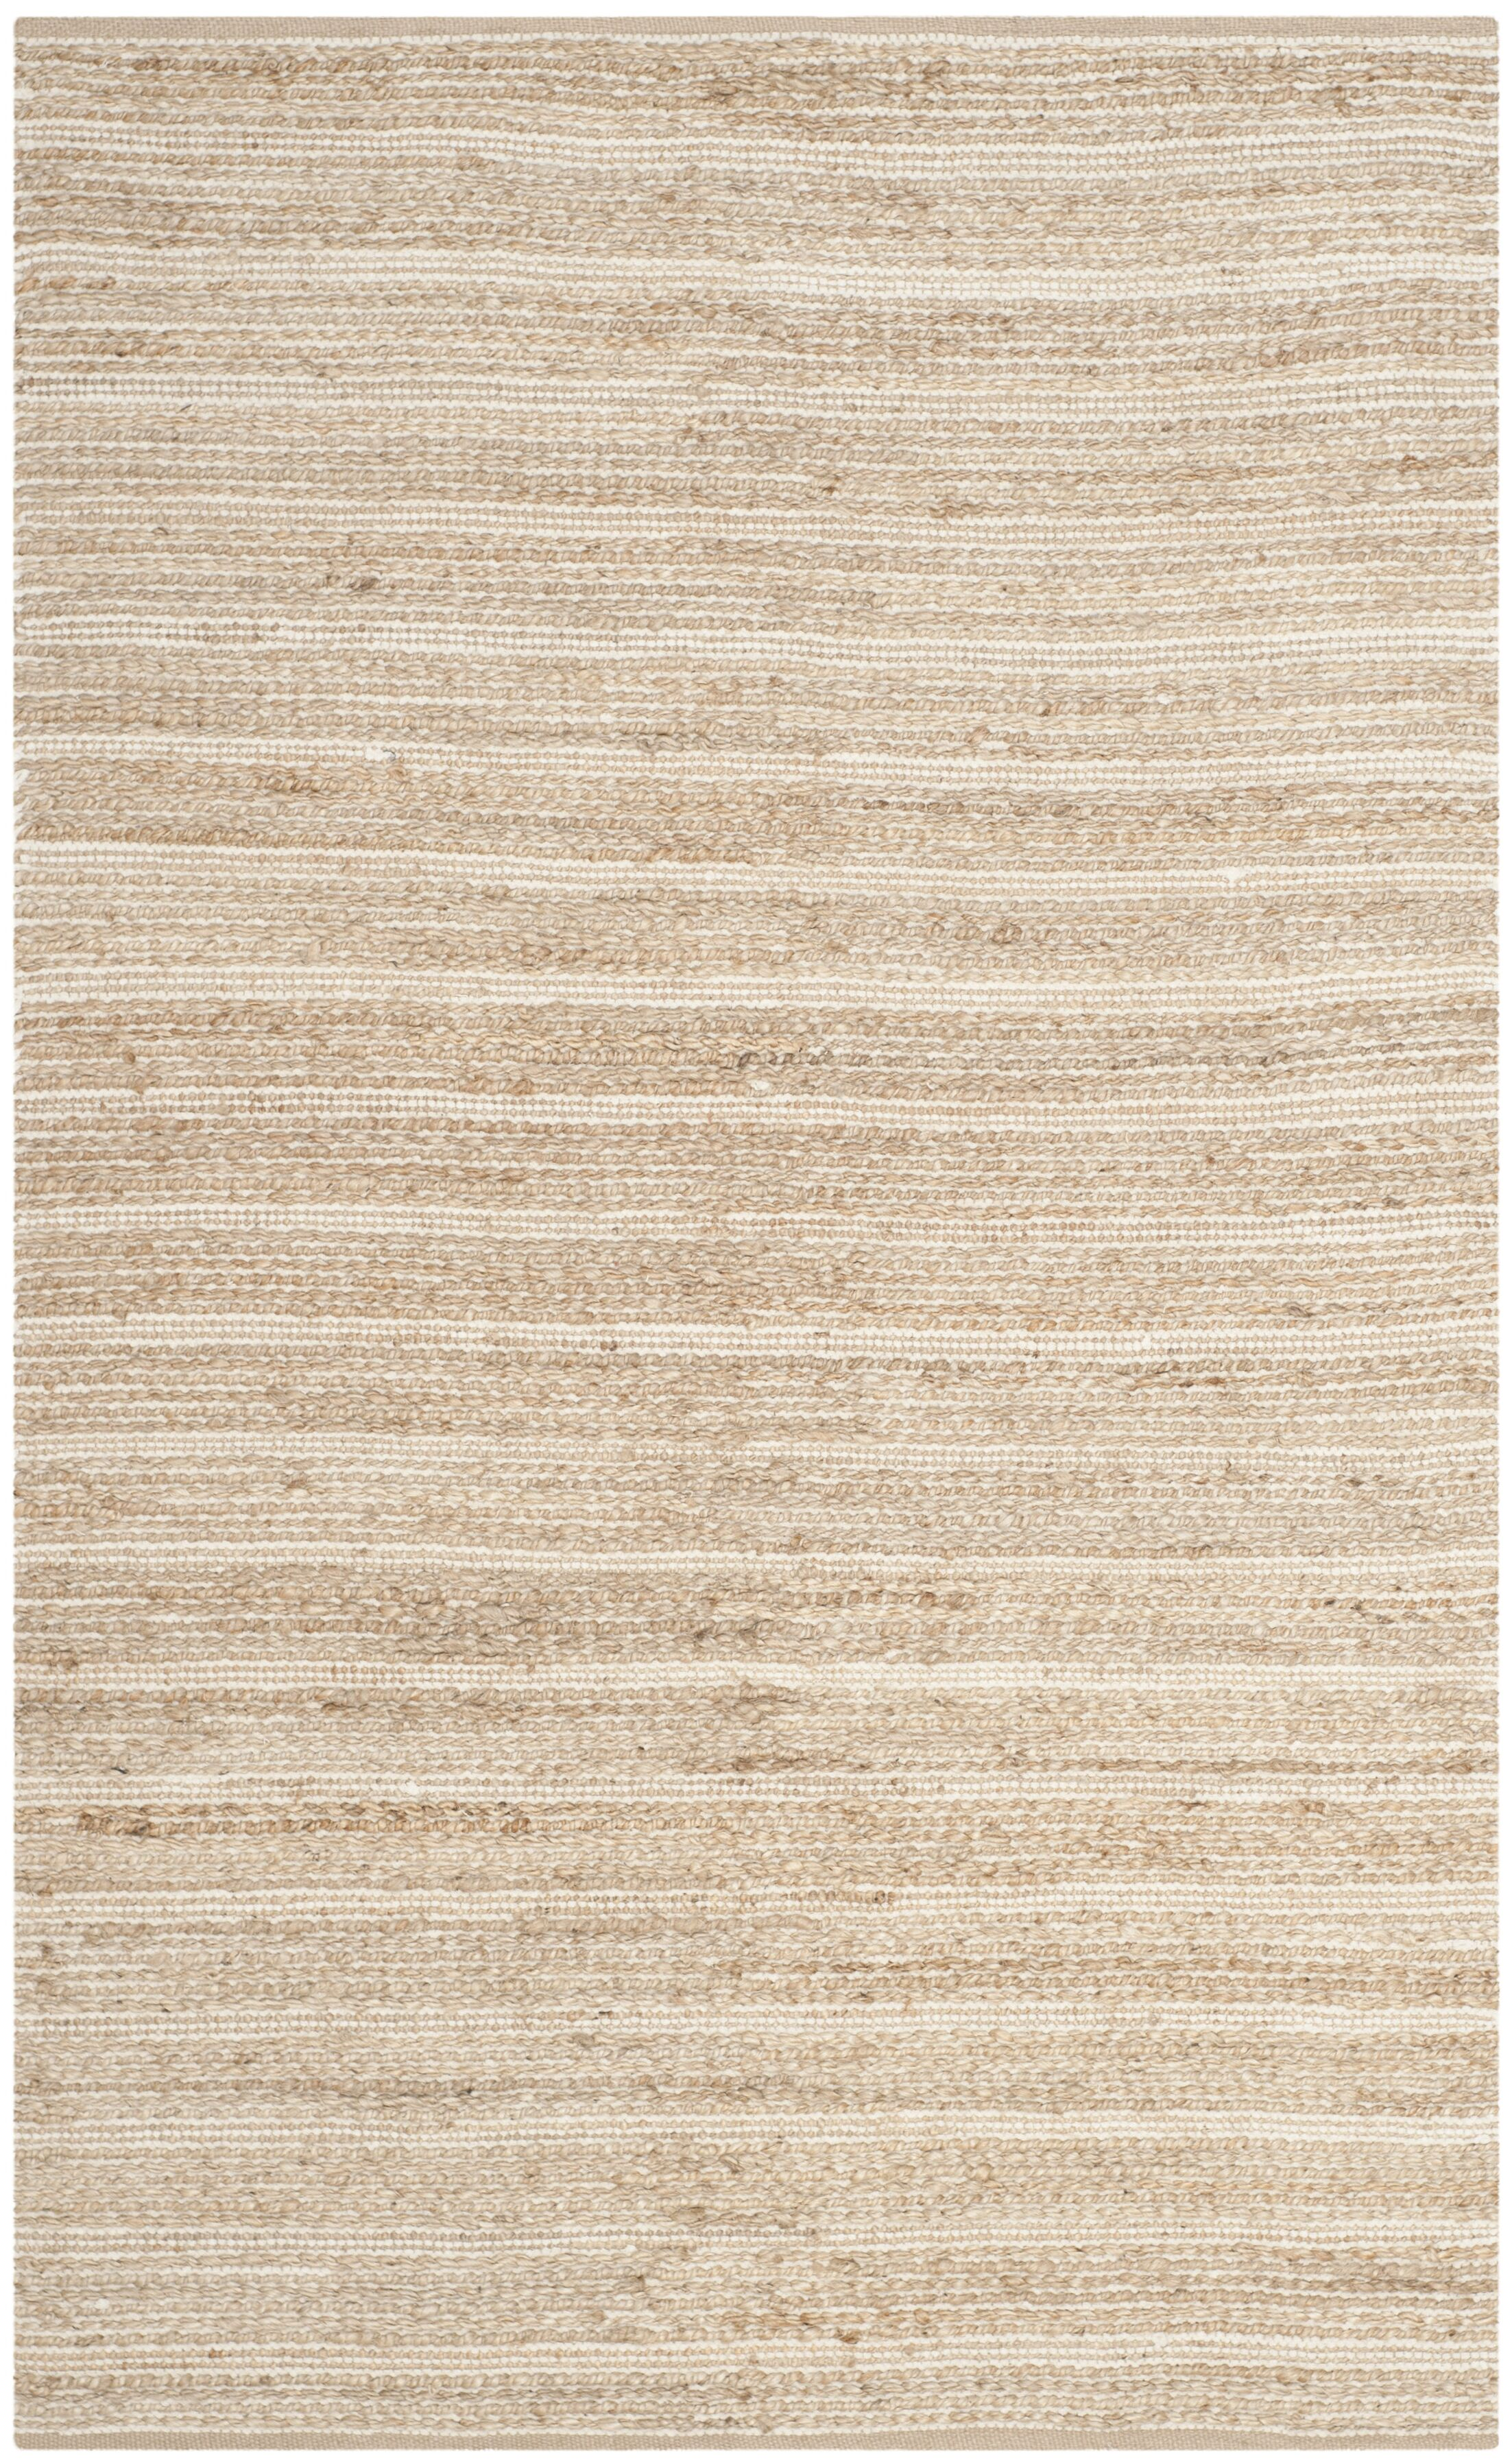 Arria Hand-Woven Rectangle Natural/Ivory Area Rug Rug Size: Rectangle 8' x 10'